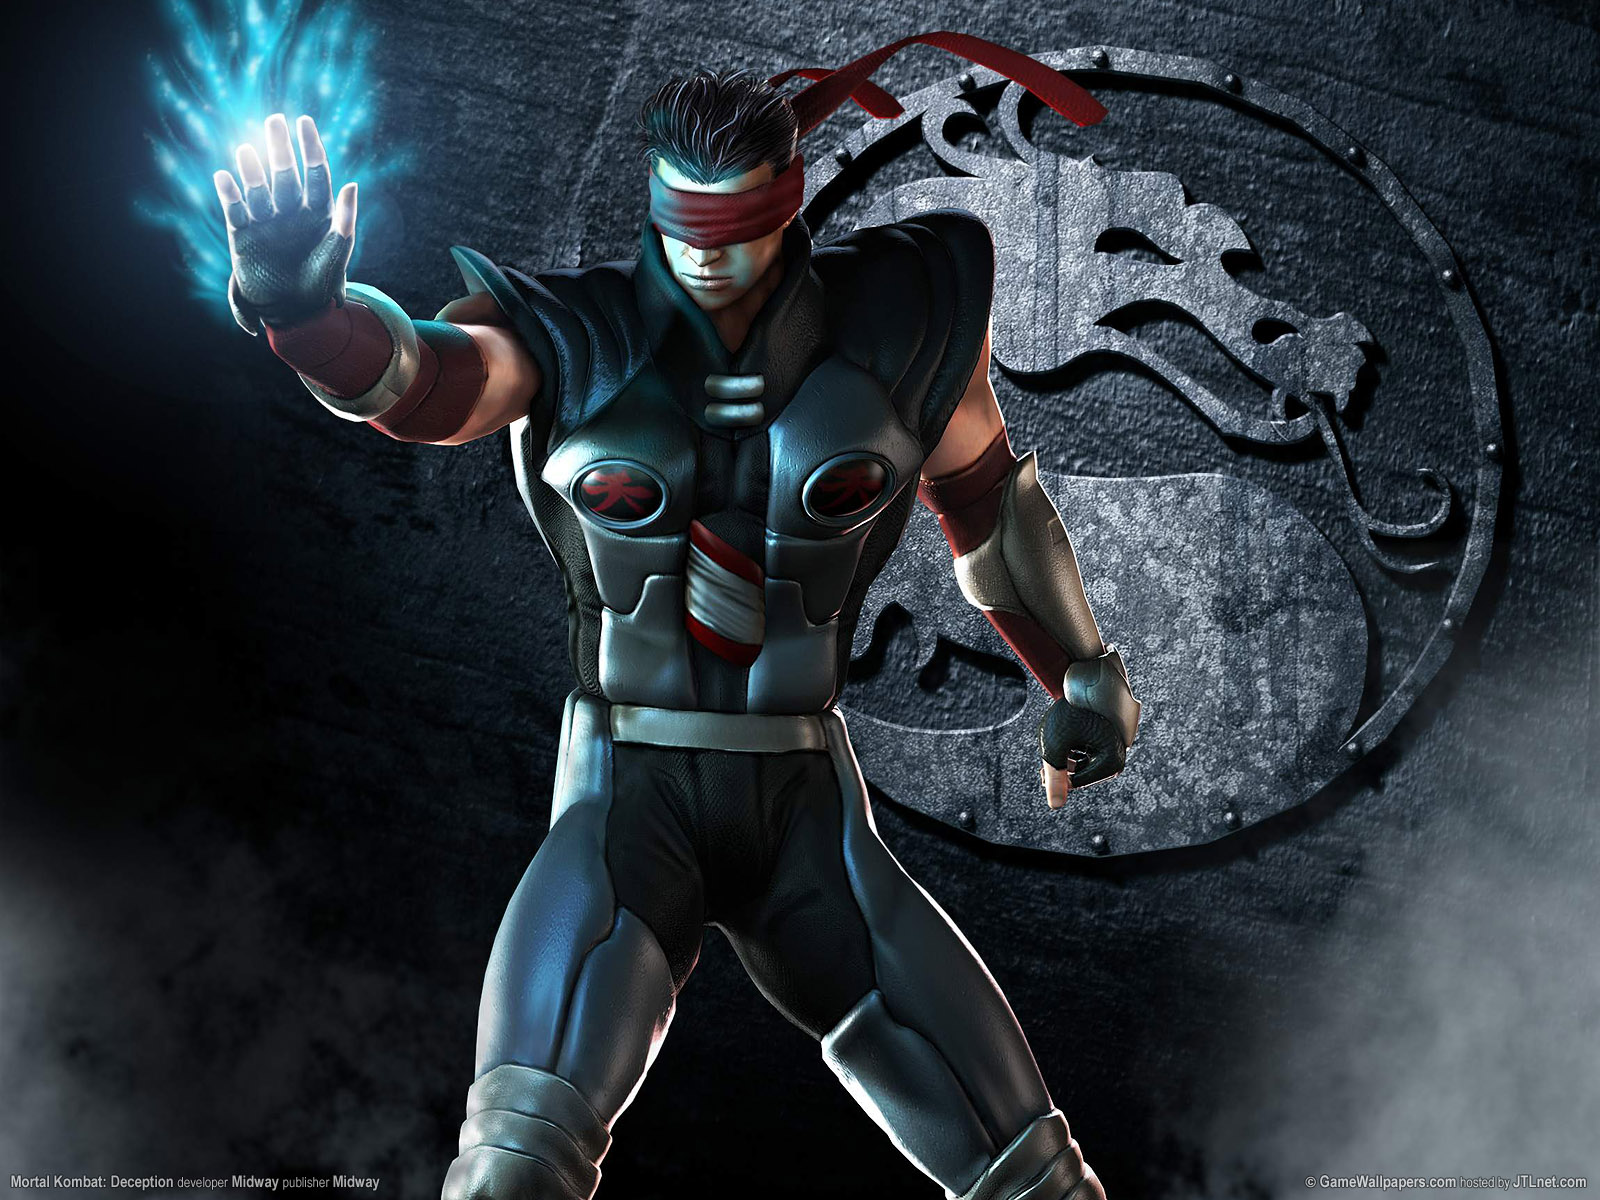 Mortal kombat HD & Widescreen Wallpaper 0.454468798409167